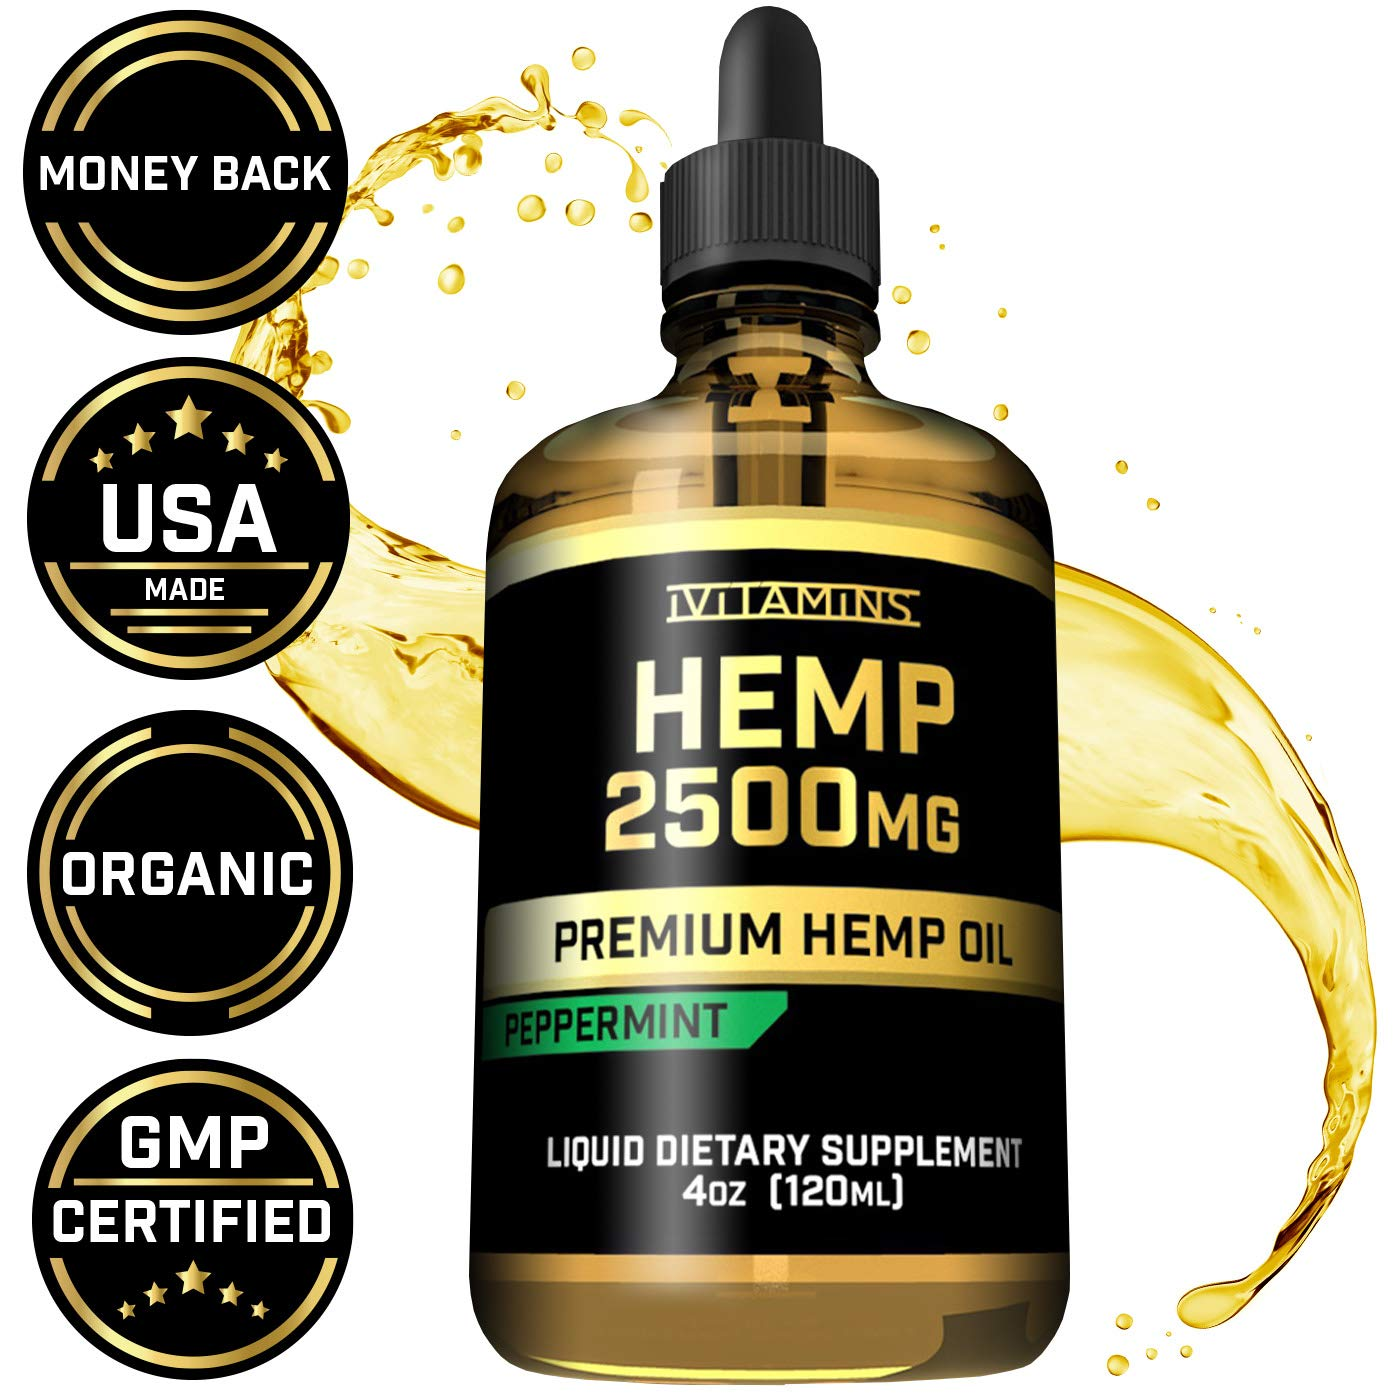 Hemp Oil for Pain Anxiety Relief :: 2500mg :: May Help with Stress, Pain,  Anxiety, Sleep, Depression,